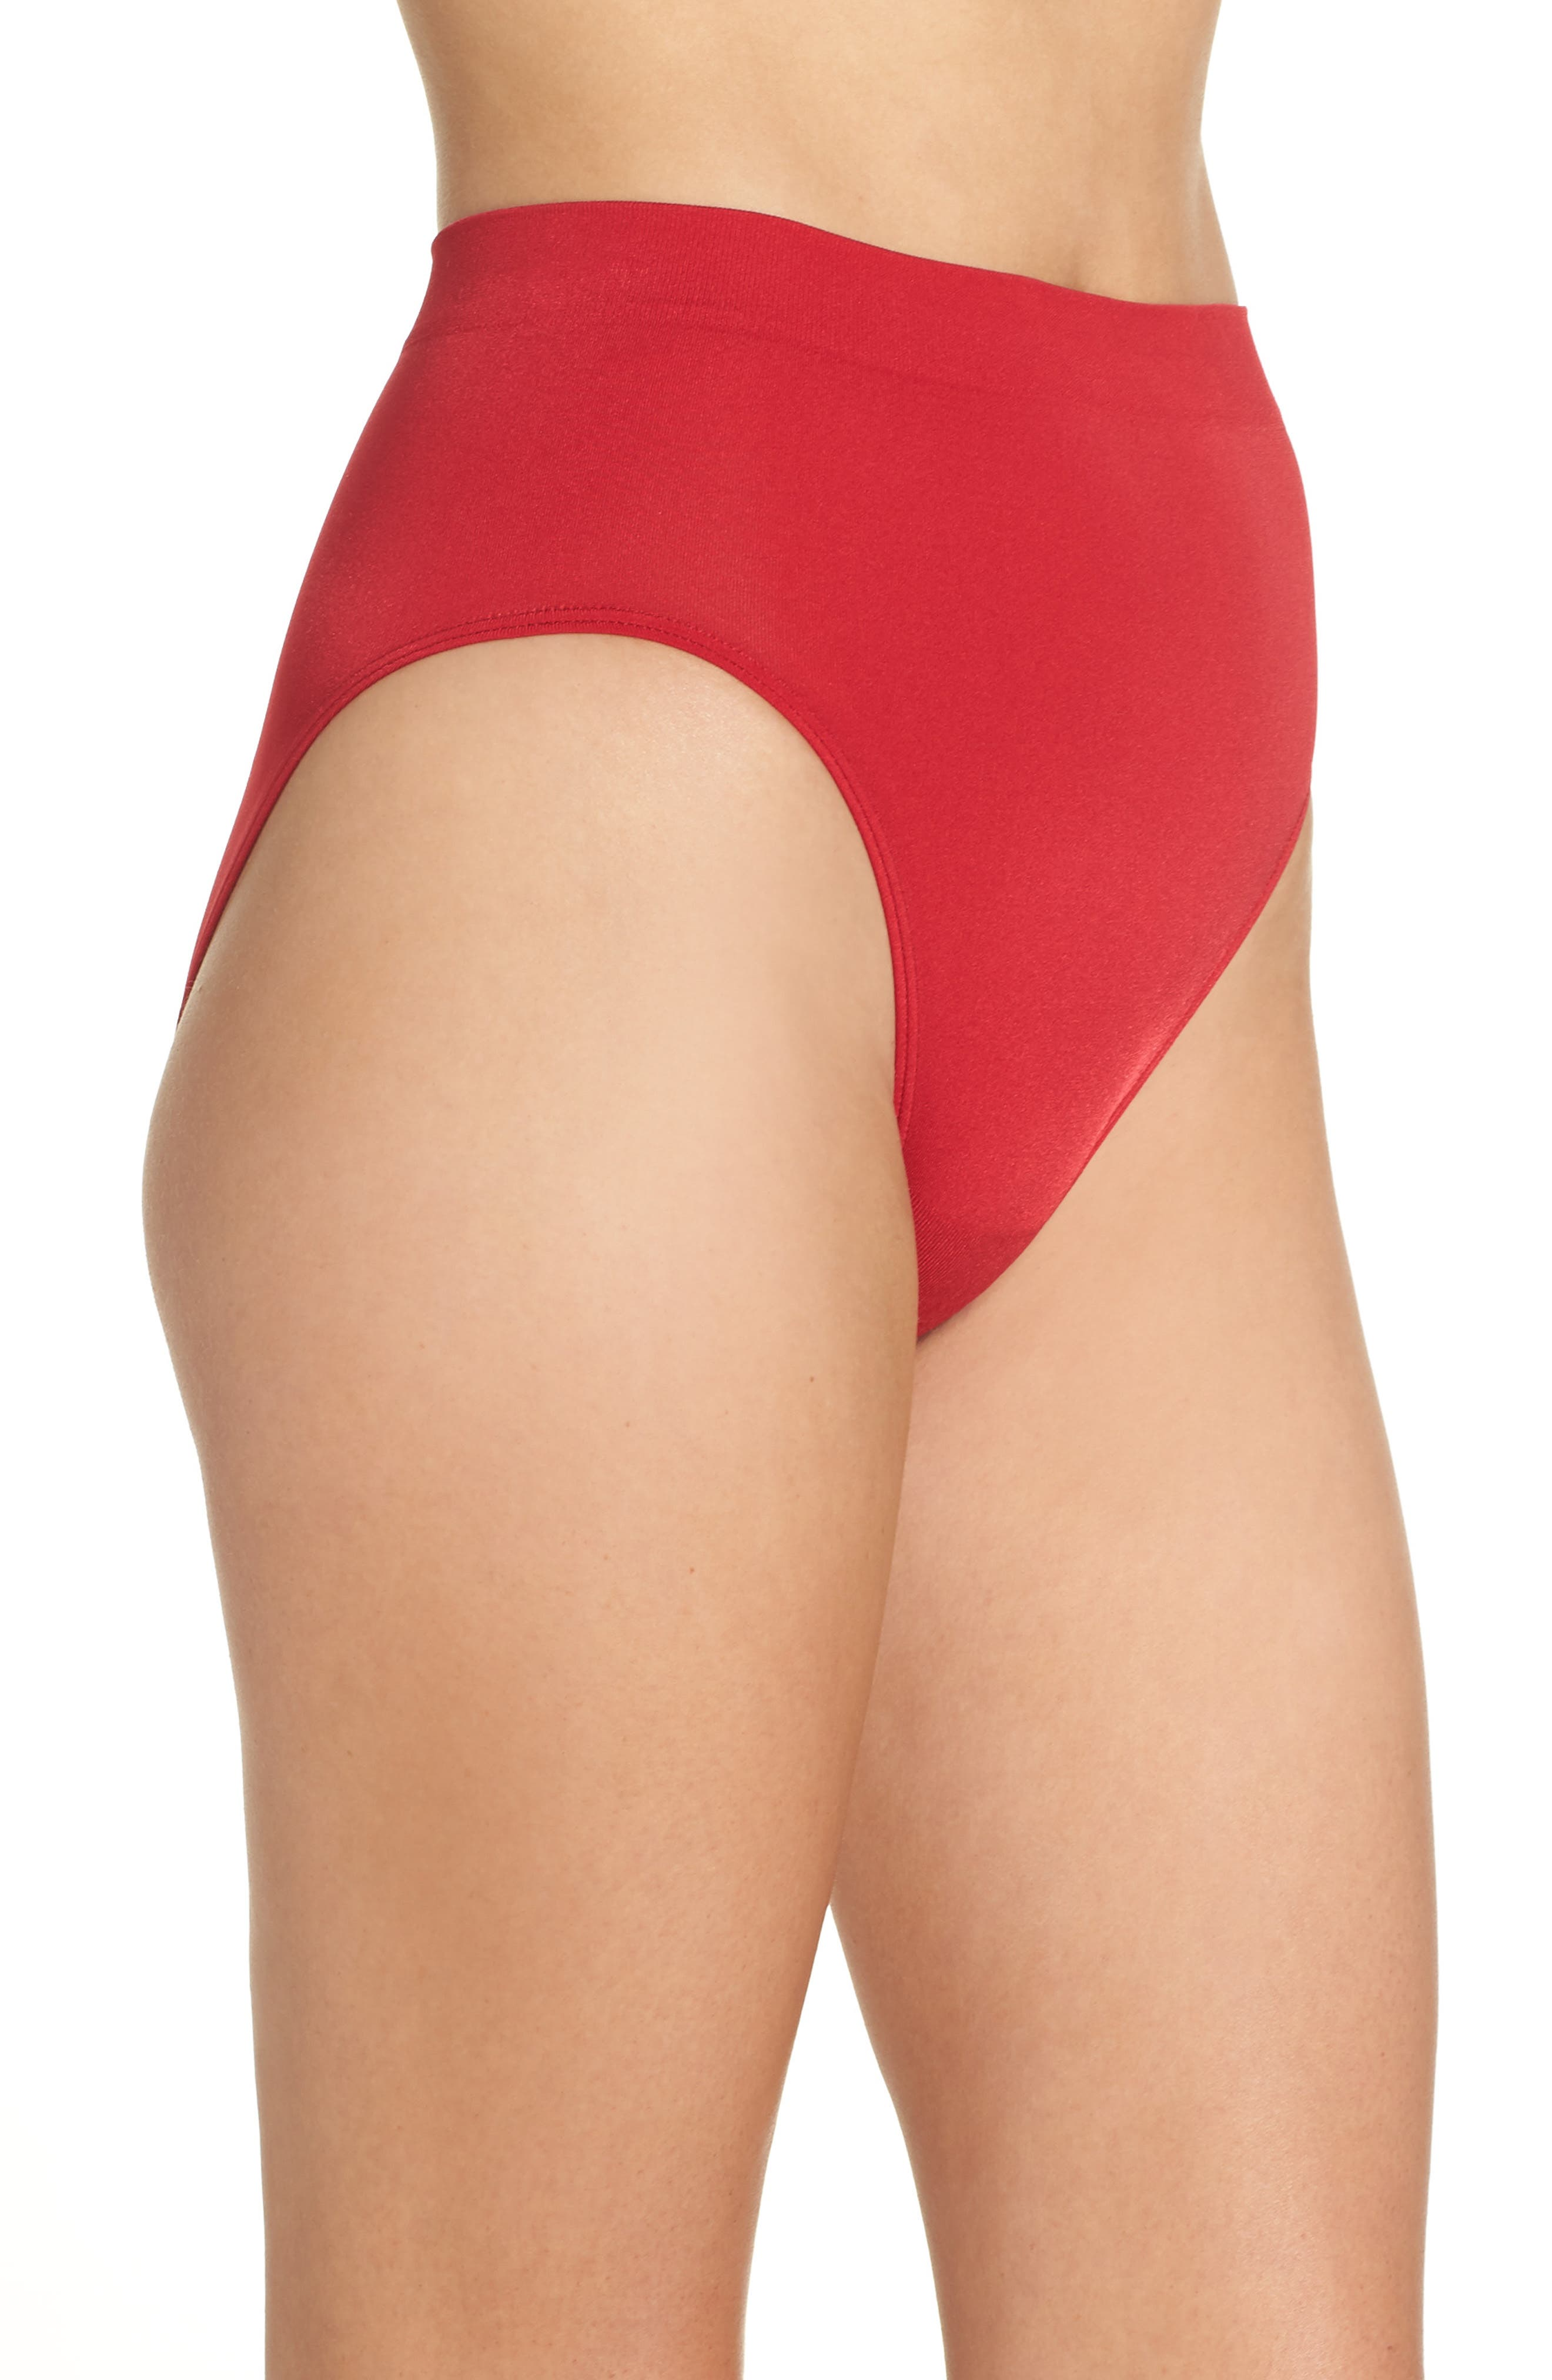 B Smooth High Cut Briefs,                             Alternate thumbnail 3, color,                             JESTER RED